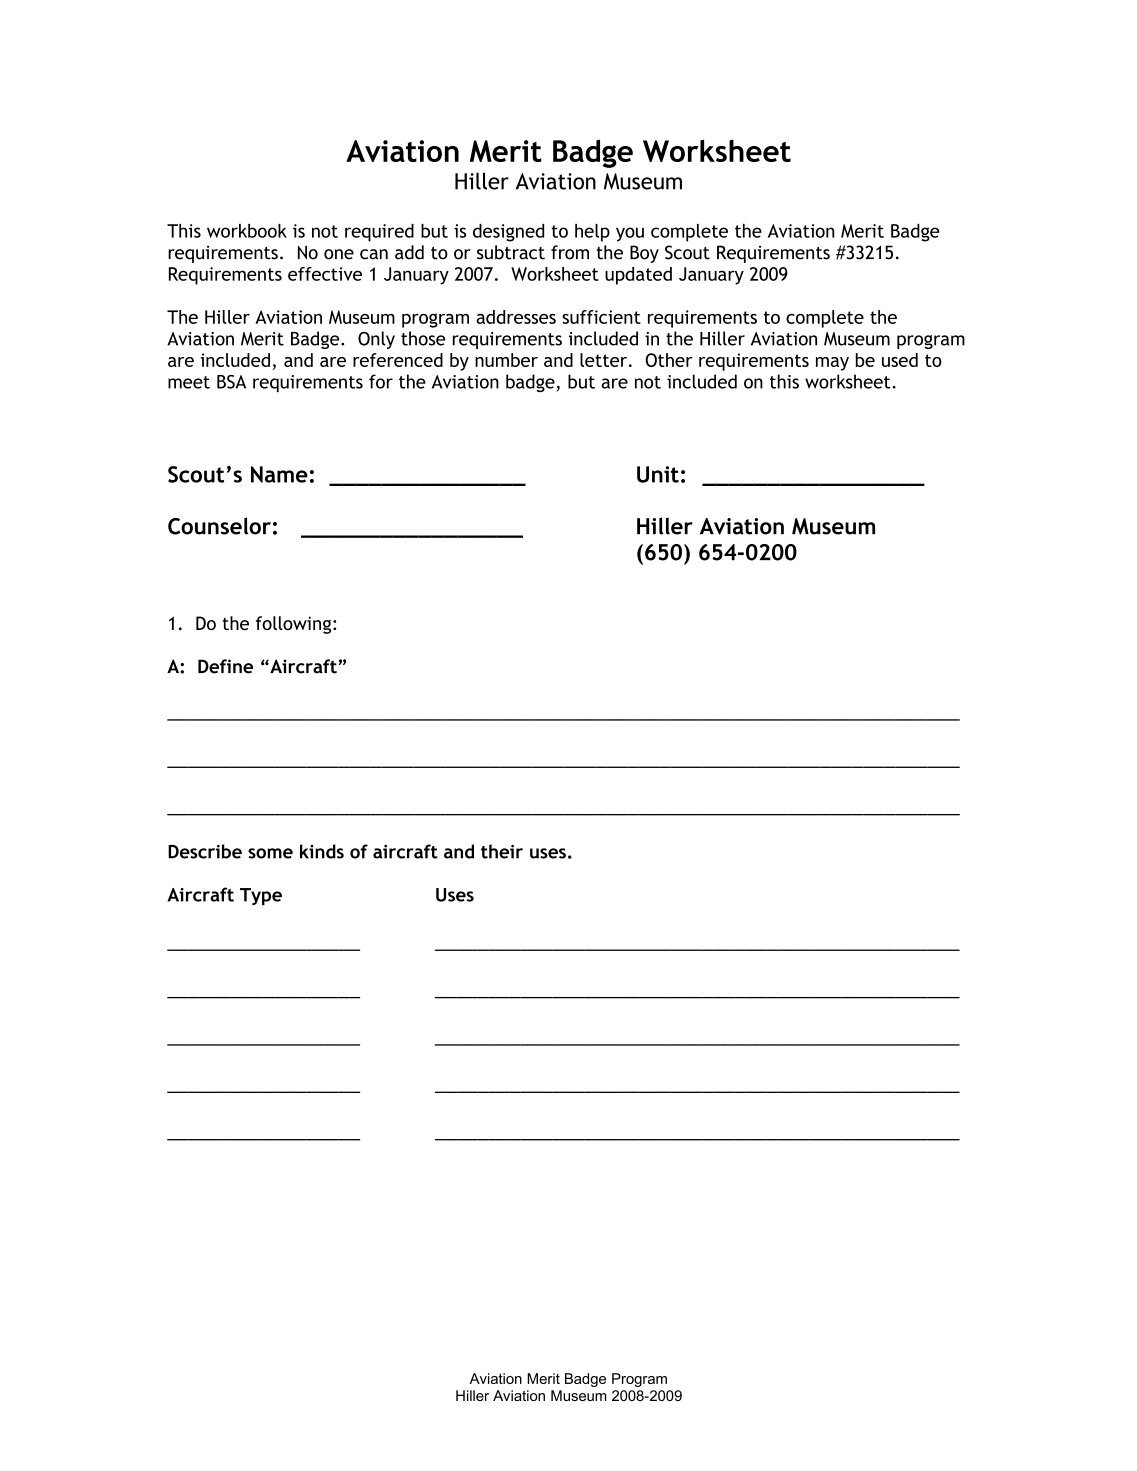 boy scout family life merit badge worksheet - laveyla.com